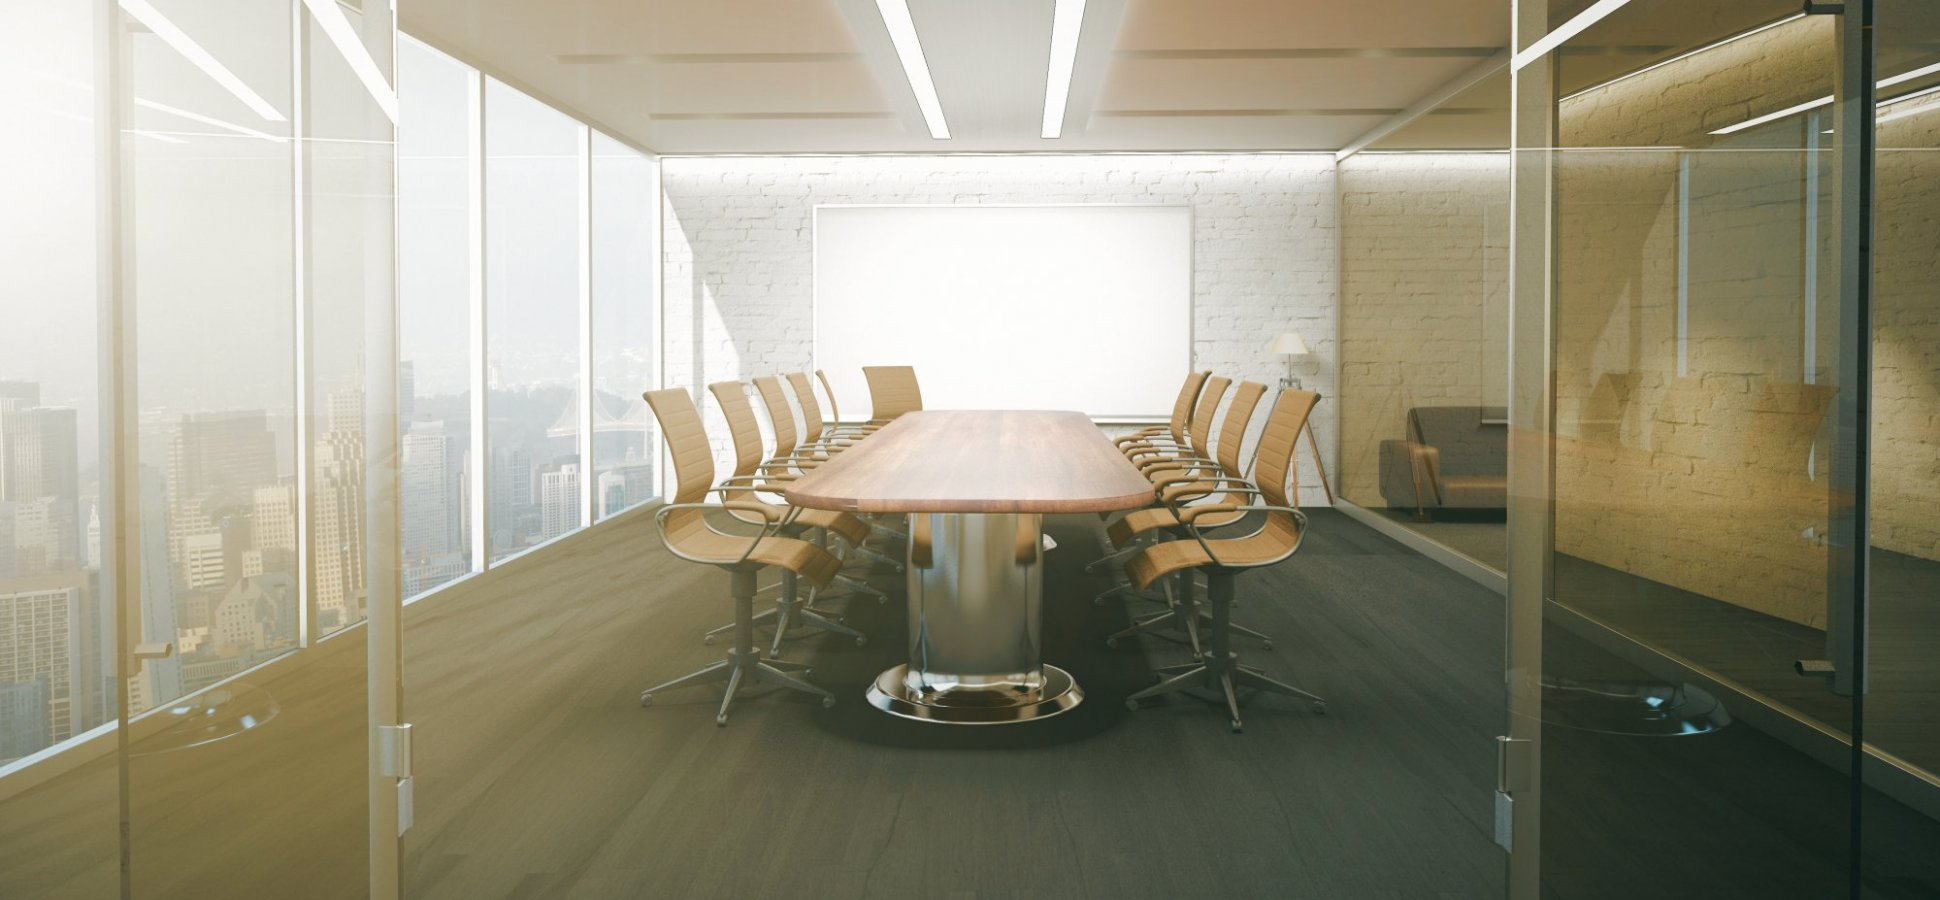 How to Run an Efficient Meeting--Without Being Bossy or Taking Over